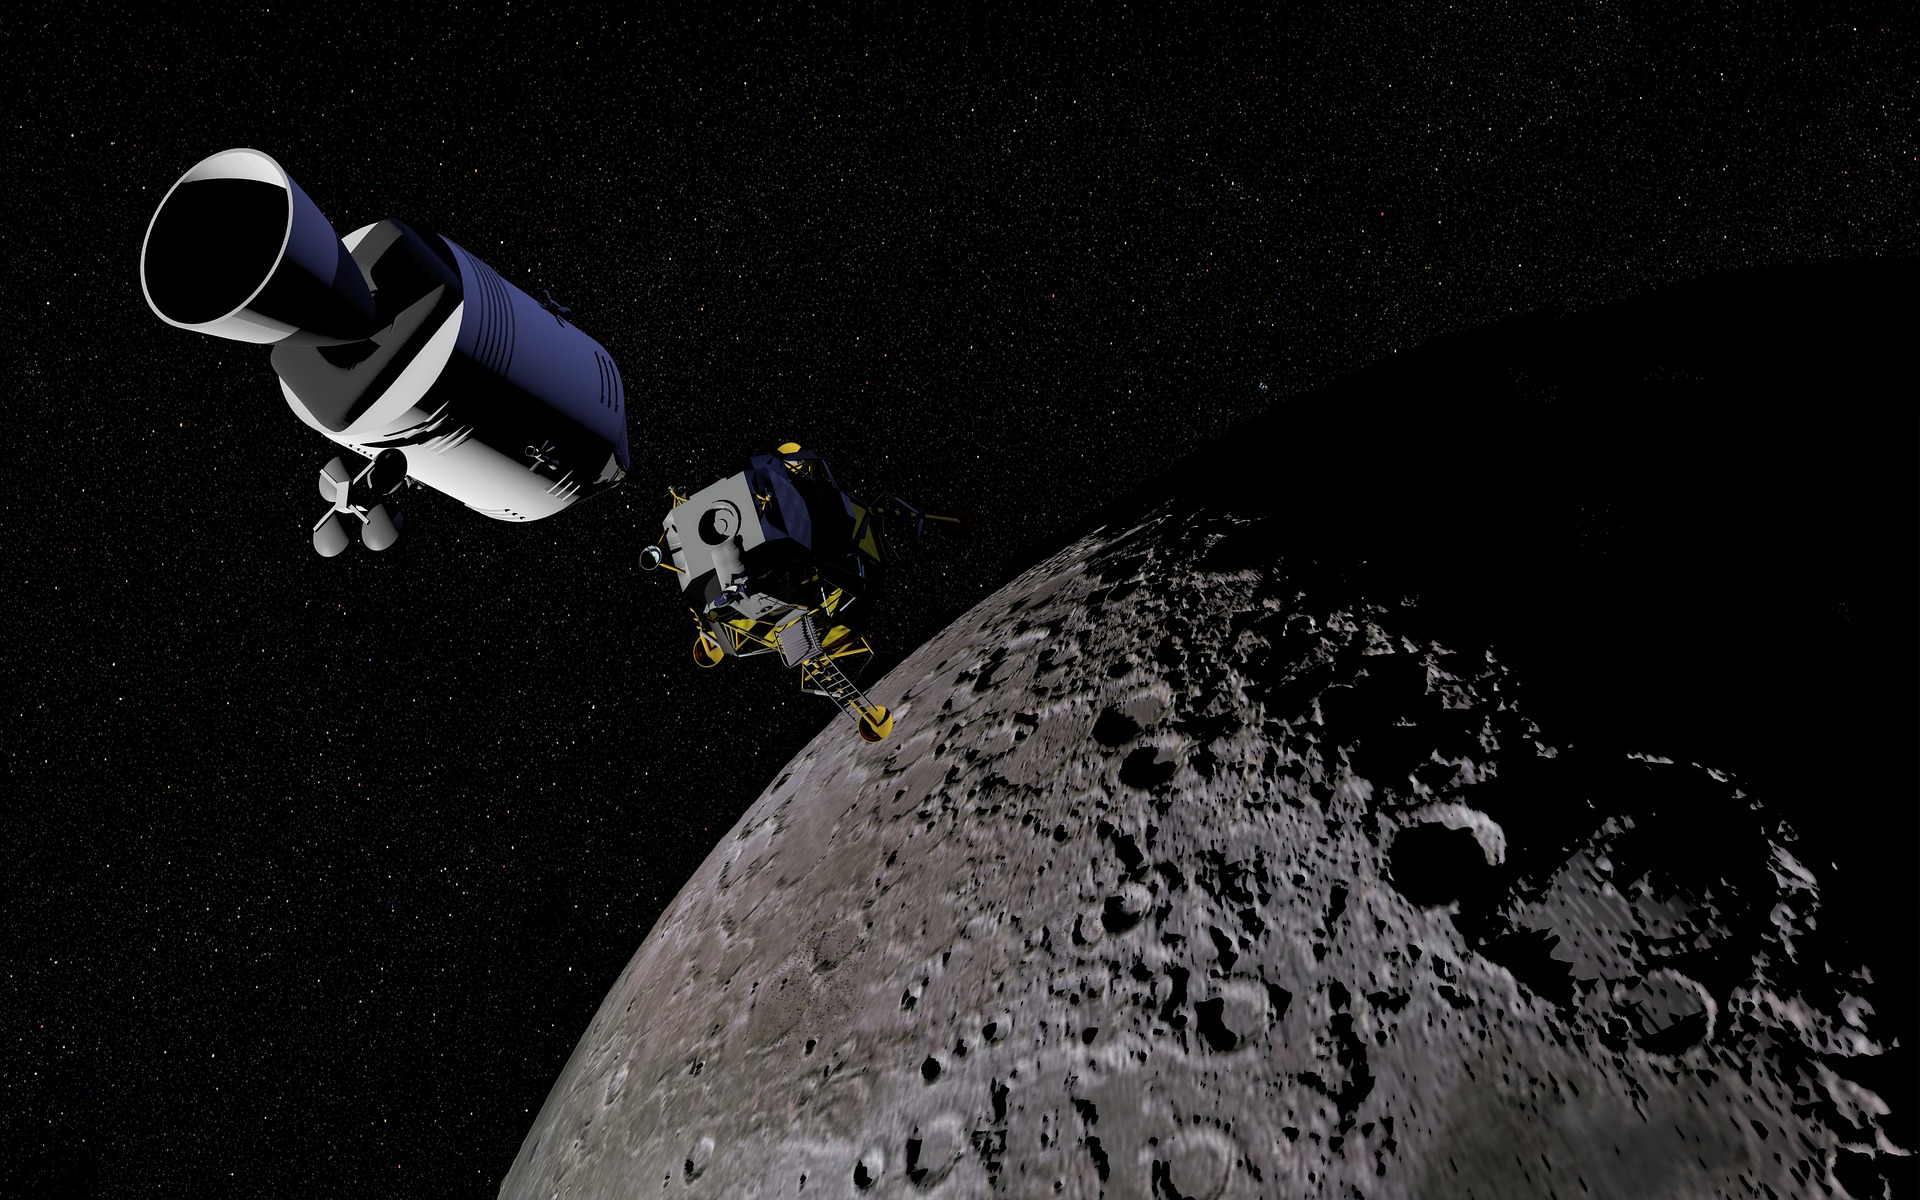 Moon missions